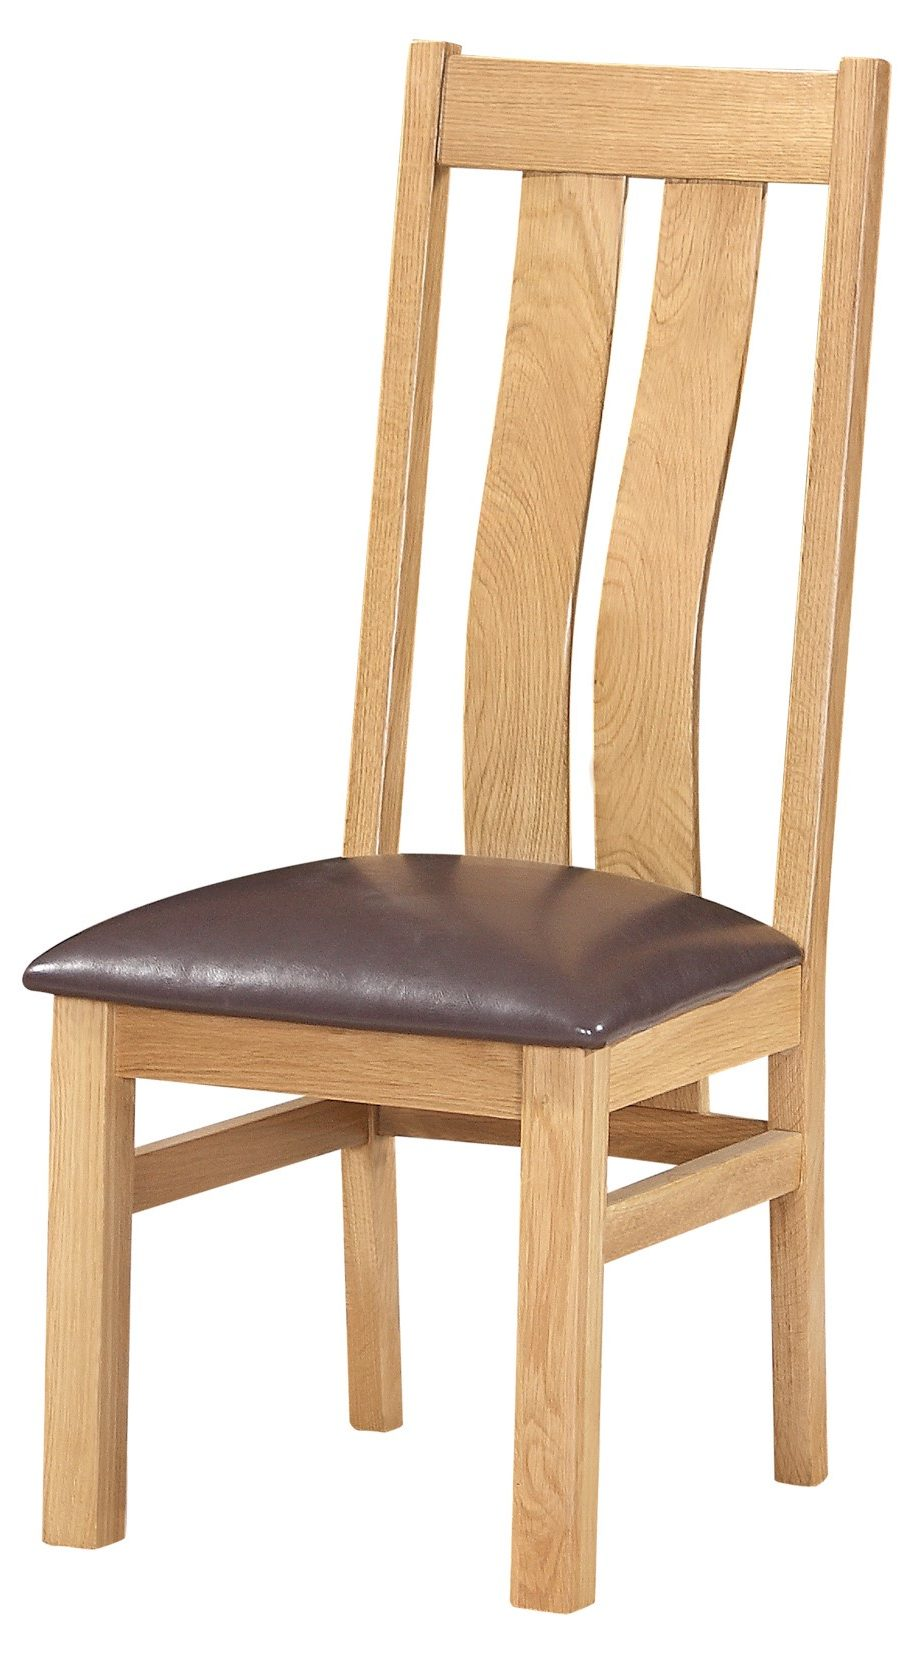 Light Oak Arizona Dining Chair. Two wide slats going downwards with lumbar support. with faux leather dark brown seat pad.DOR100